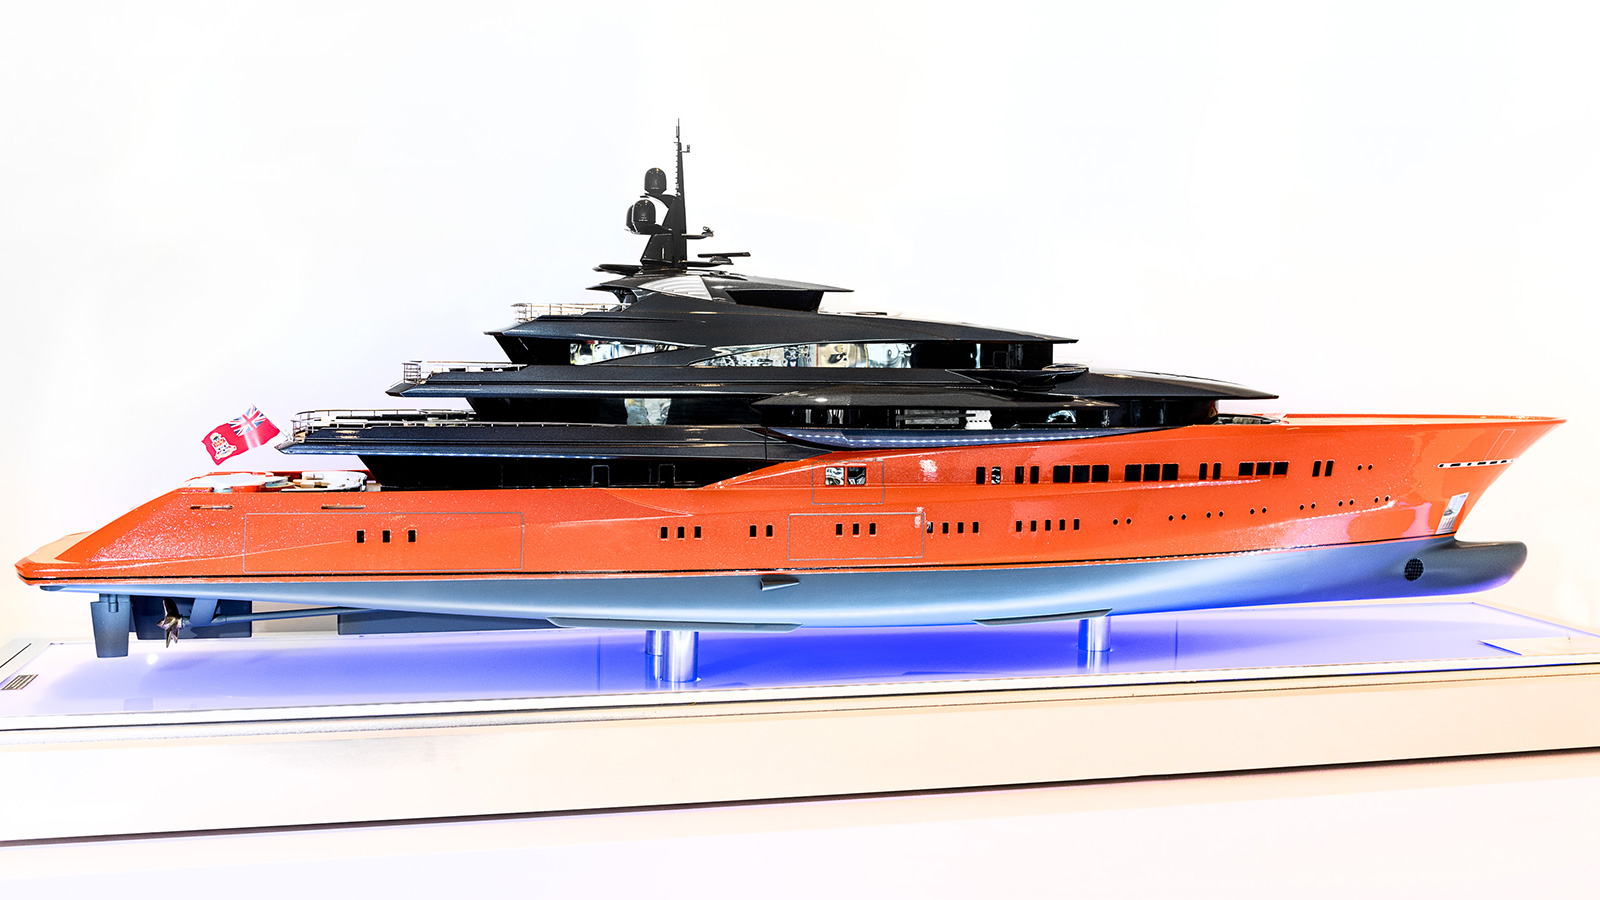 side-view-of-the-oceanco-yacht-concept-project-lumen